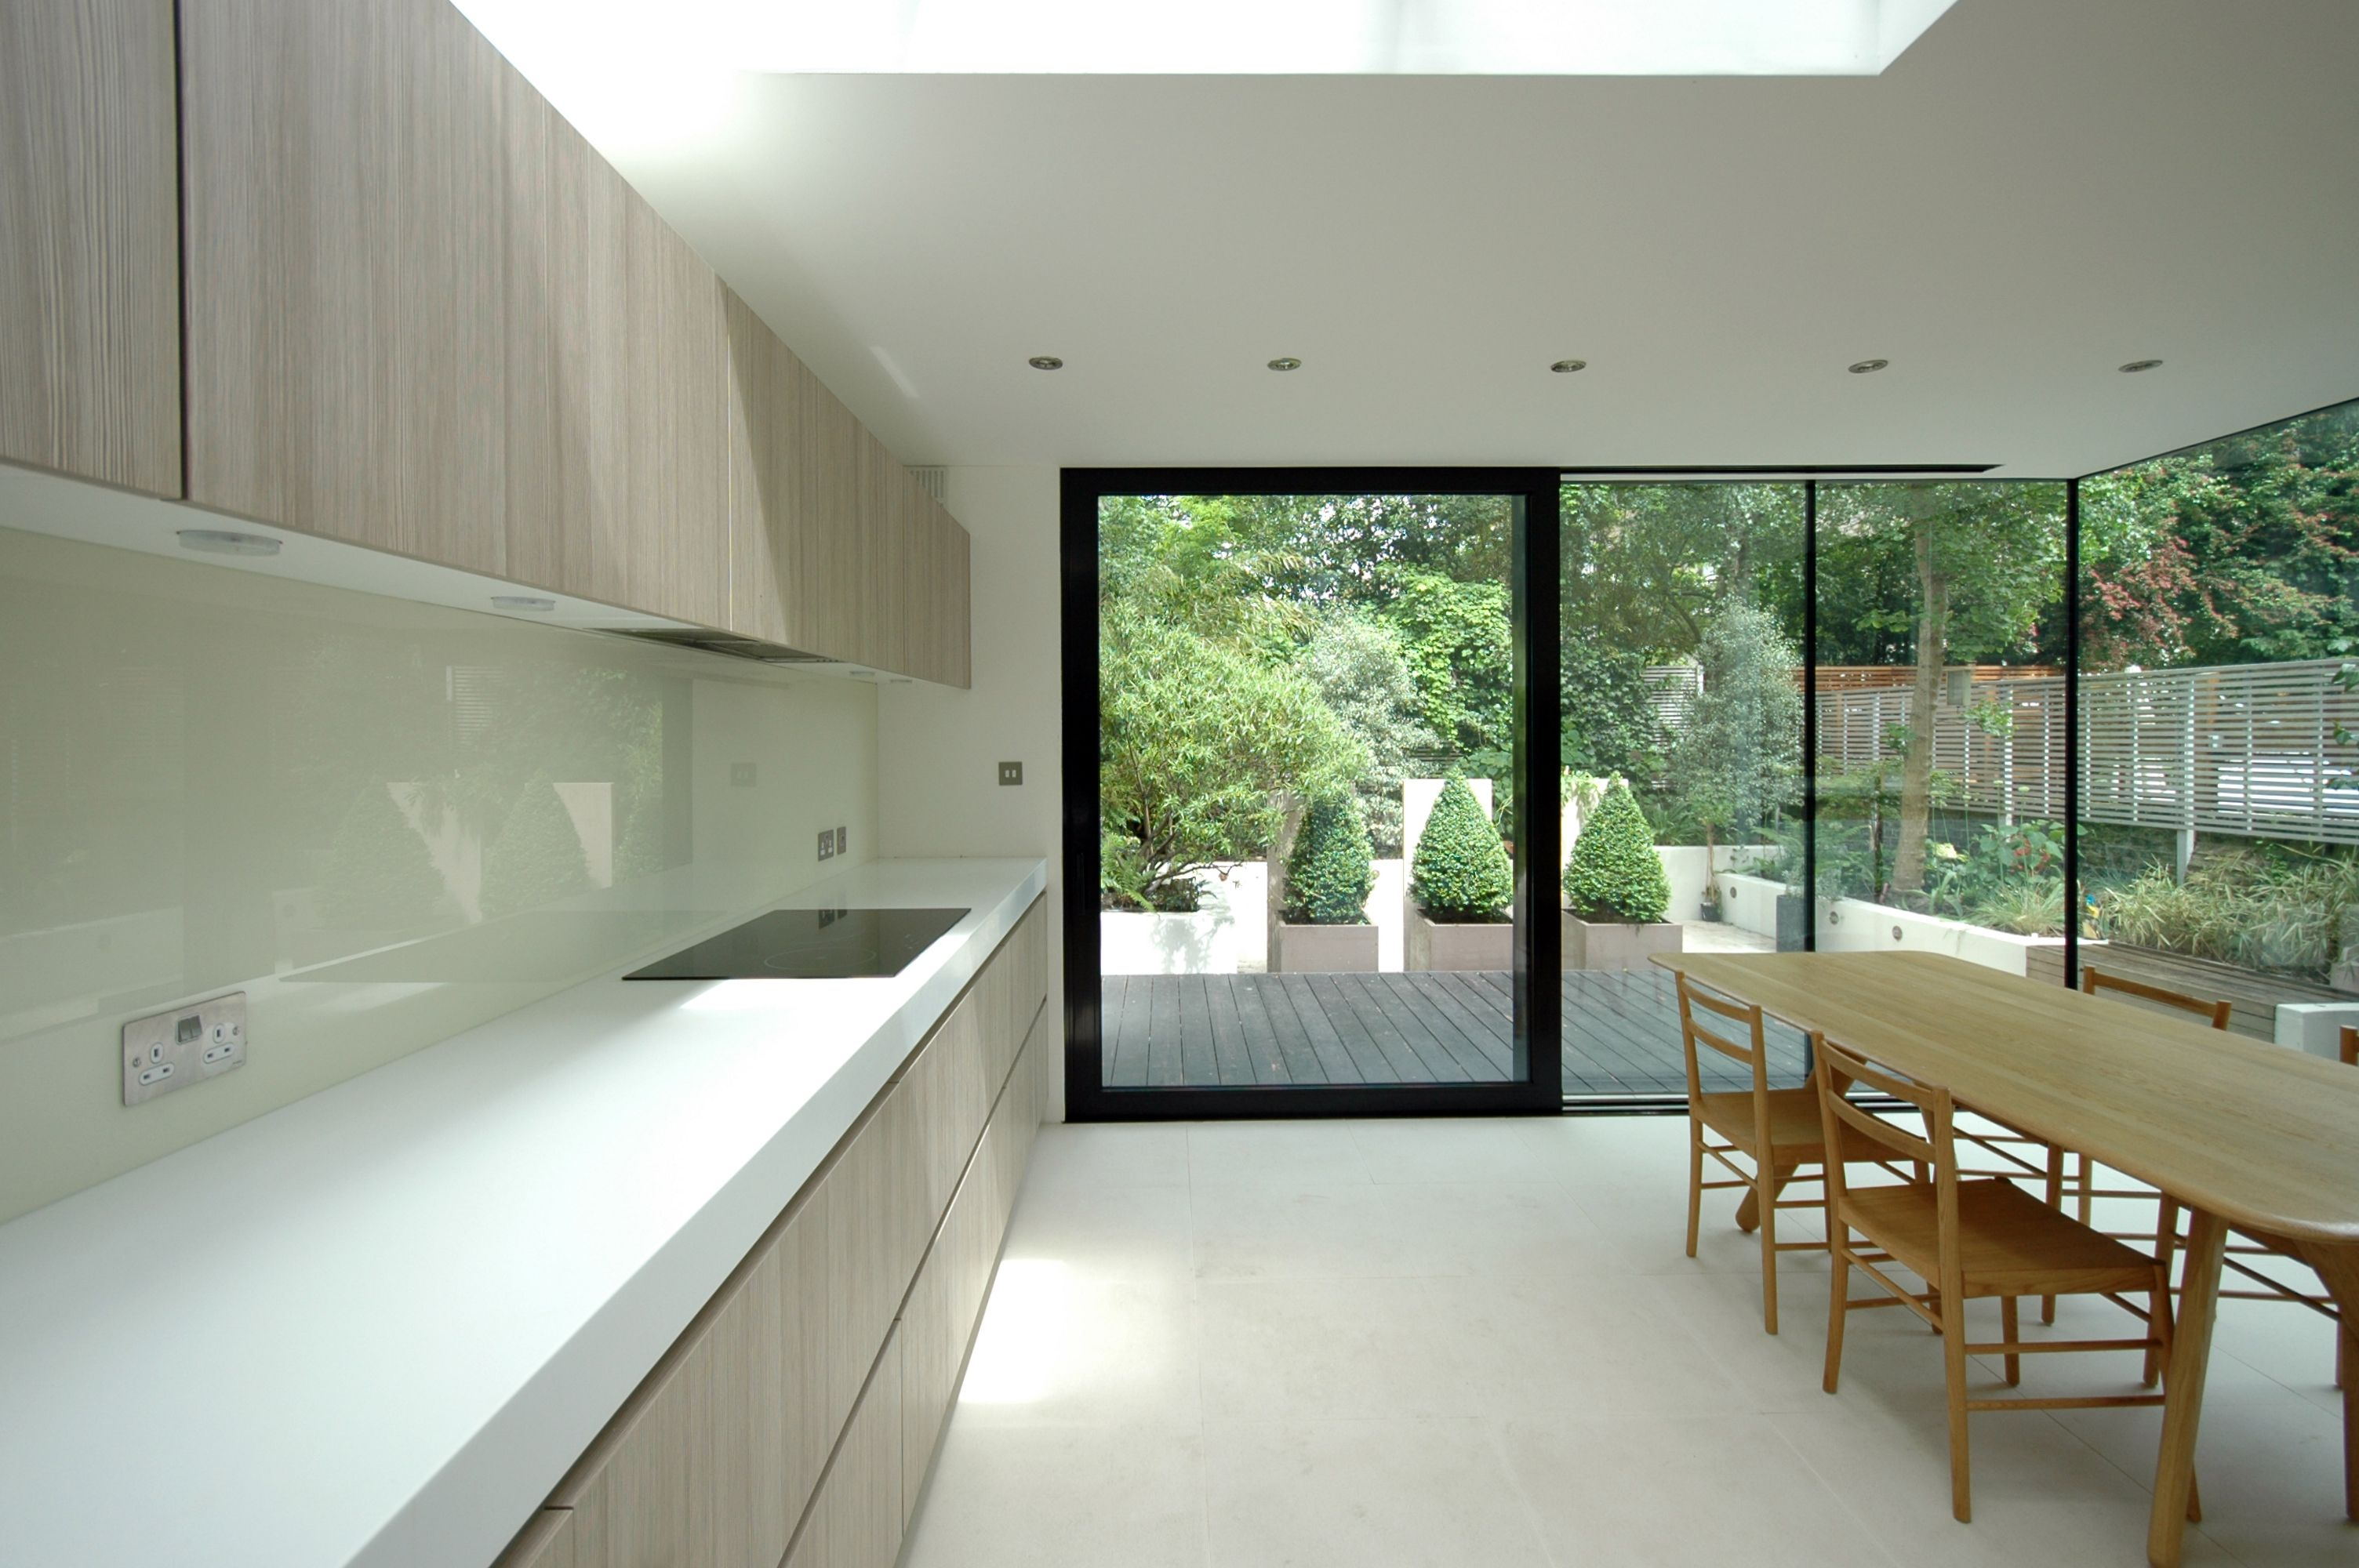 Find your ideal home design pro on designfor-me.com - get matched and see who's interested in your home project.     Click image to see more inspiration from our design pros Design by Jake, architect from Islington South and Finsbury #architecture #homedesign #modernhomes #homeinspiration #kitchens #kitchendesign #kitcheninspiration #kitchenideas #kitchengoals #extensions #extensiondesign #extensioninspiration #extensionideas #houseextension #scandihome #scandidecor #scandinaviandesign